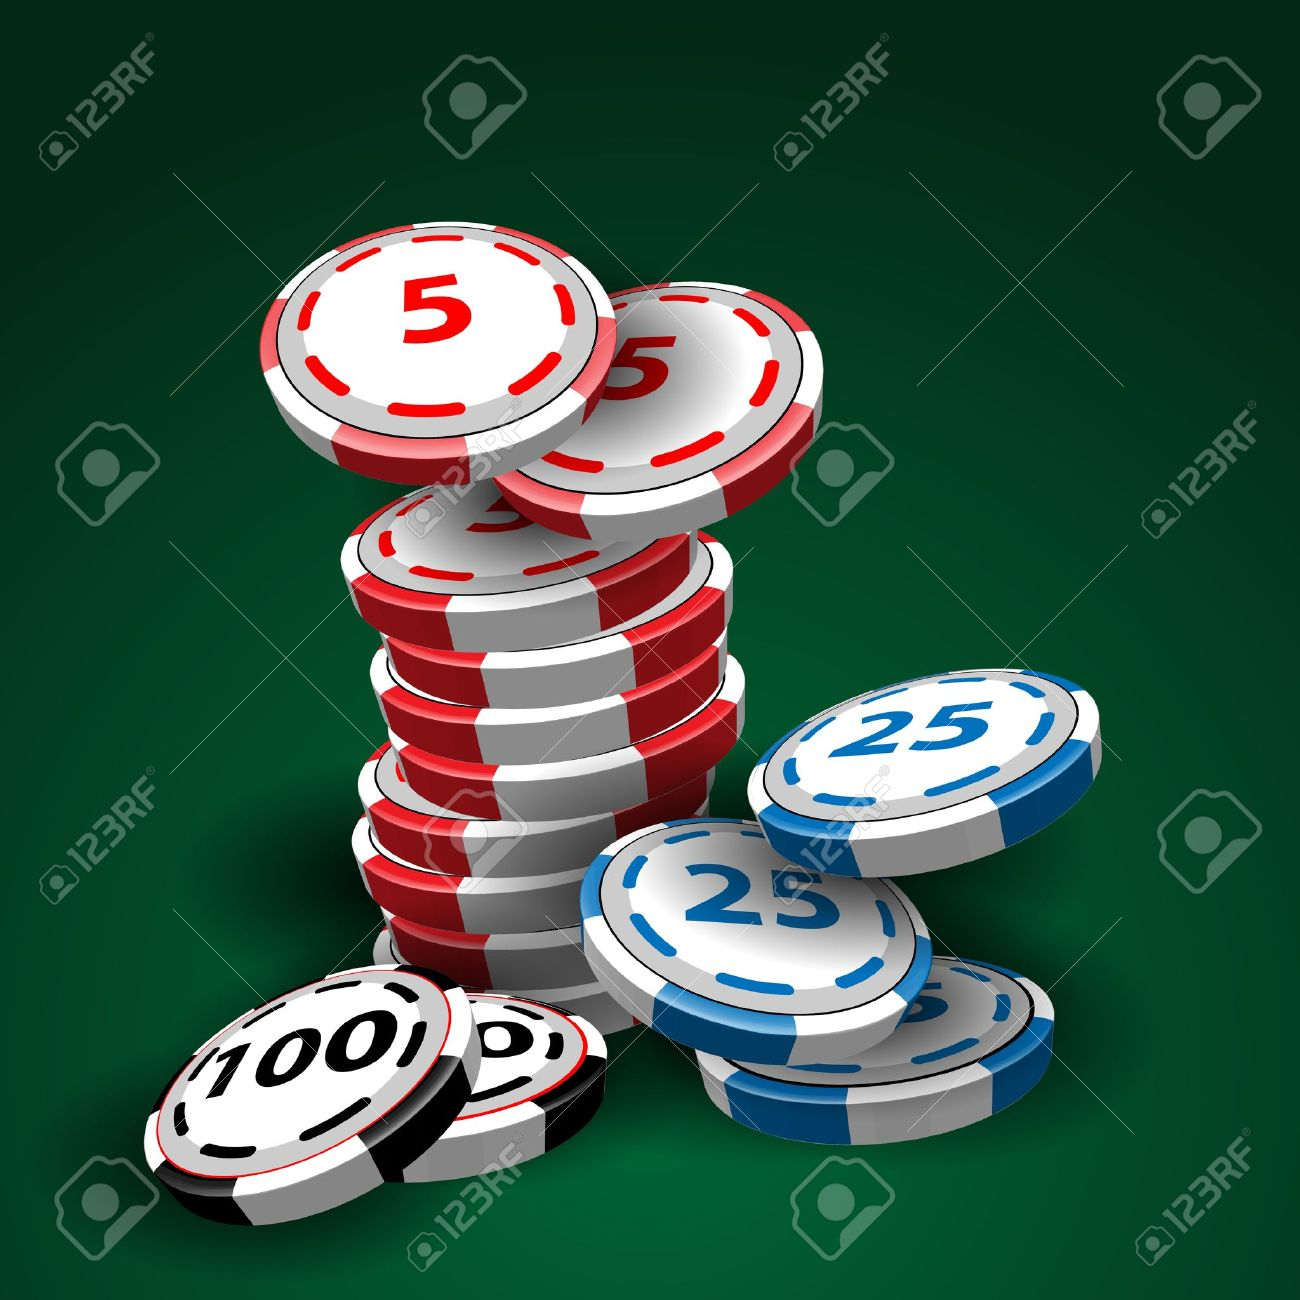 Poker table background - Poker Table Background Casino Chips Stacks On Green Background